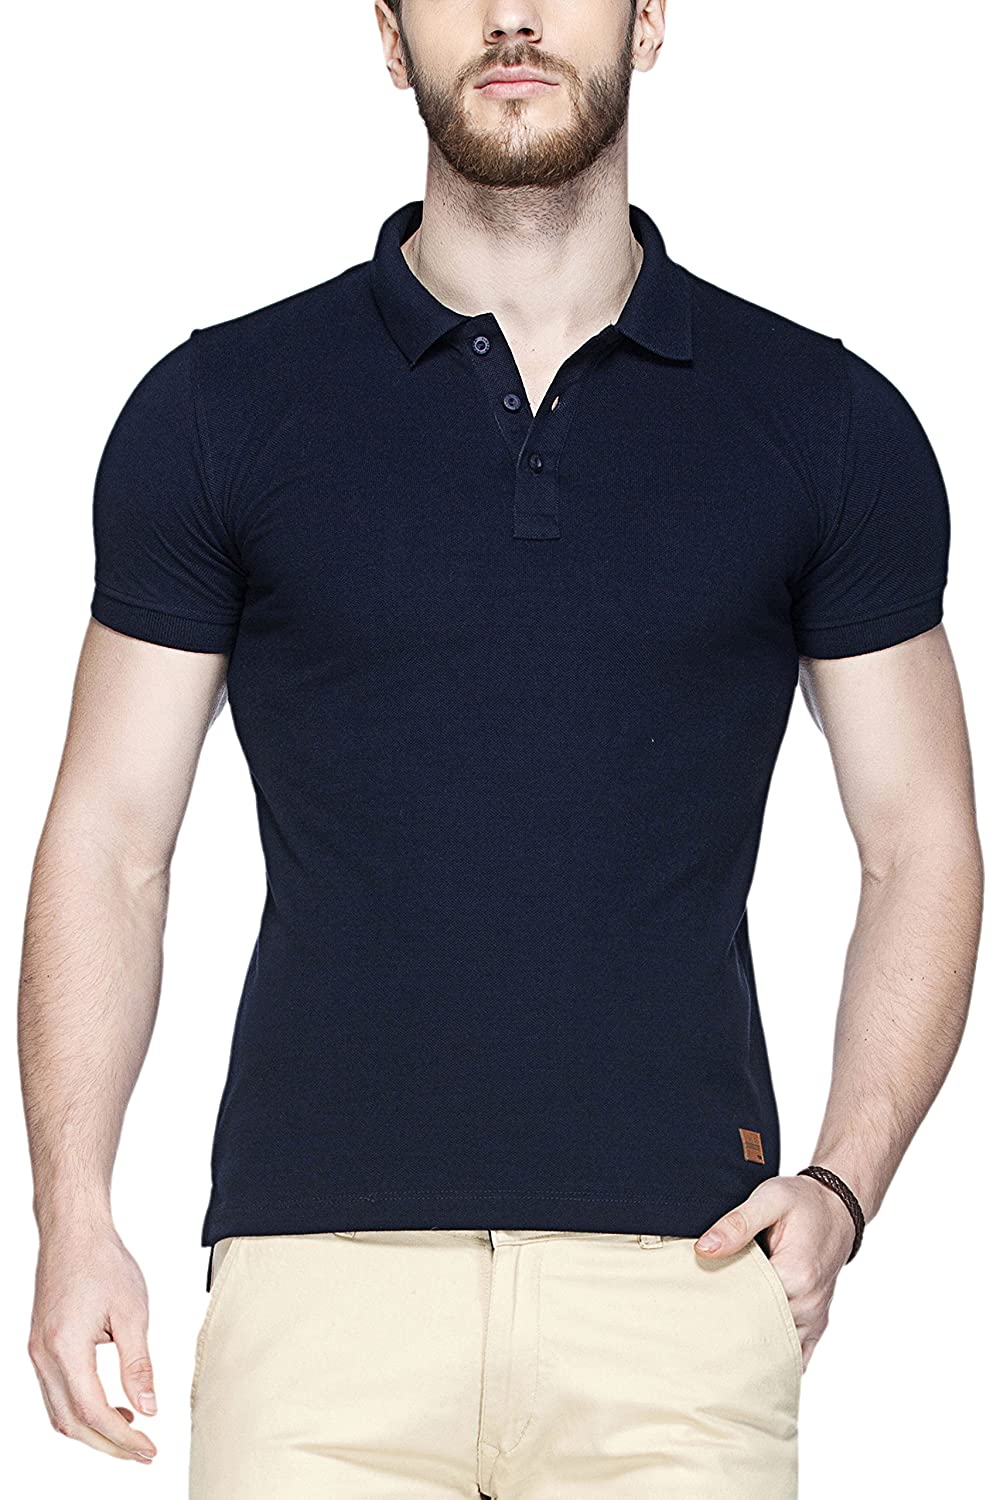 Tinted Men's Solid Polo Half Sleeve T-Shirt